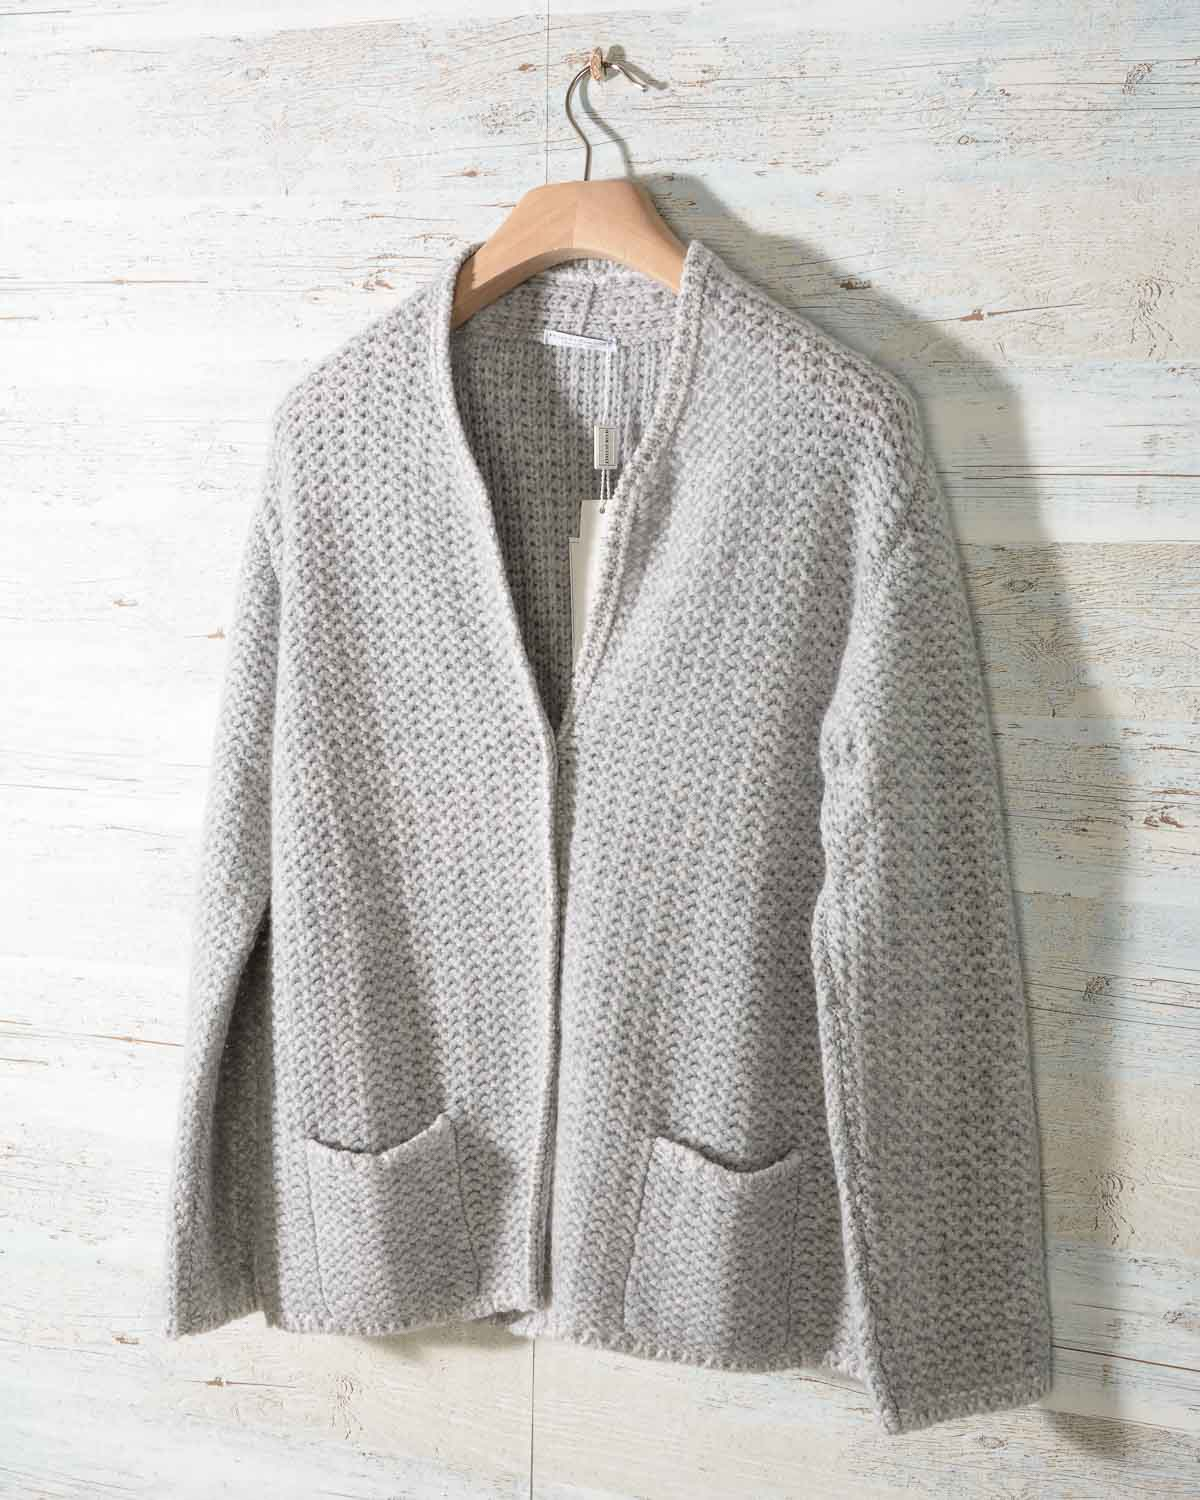 official photos 6a7d2 91cde Maglia Cardigan Donna Hubert Gasser in Cachemire 4 fili